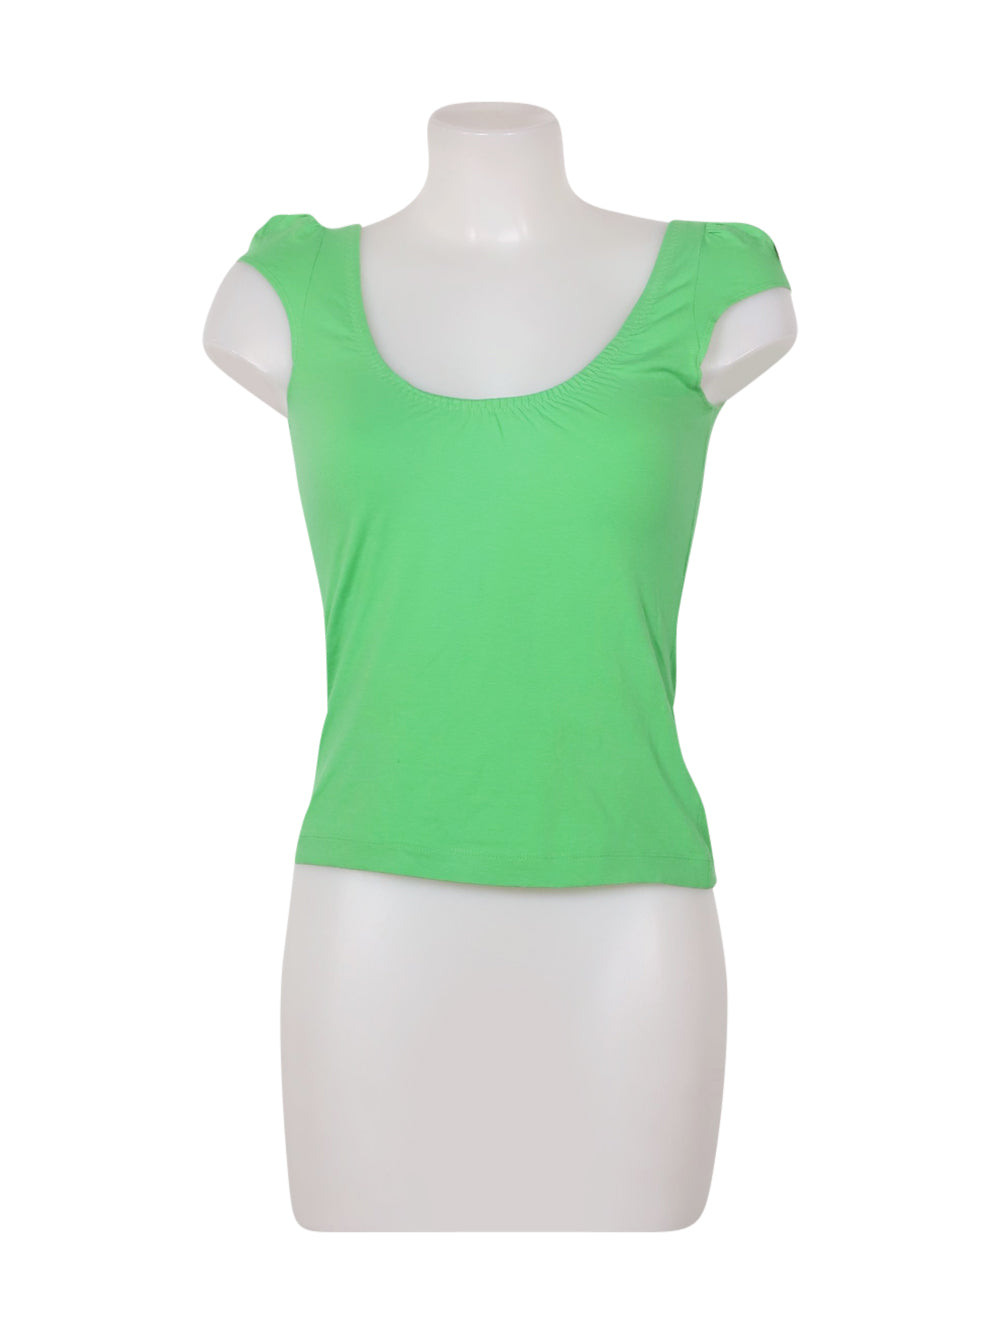 Front photo of Preloved Miss Sixty Green Woman's sleeveless top - size 8/S